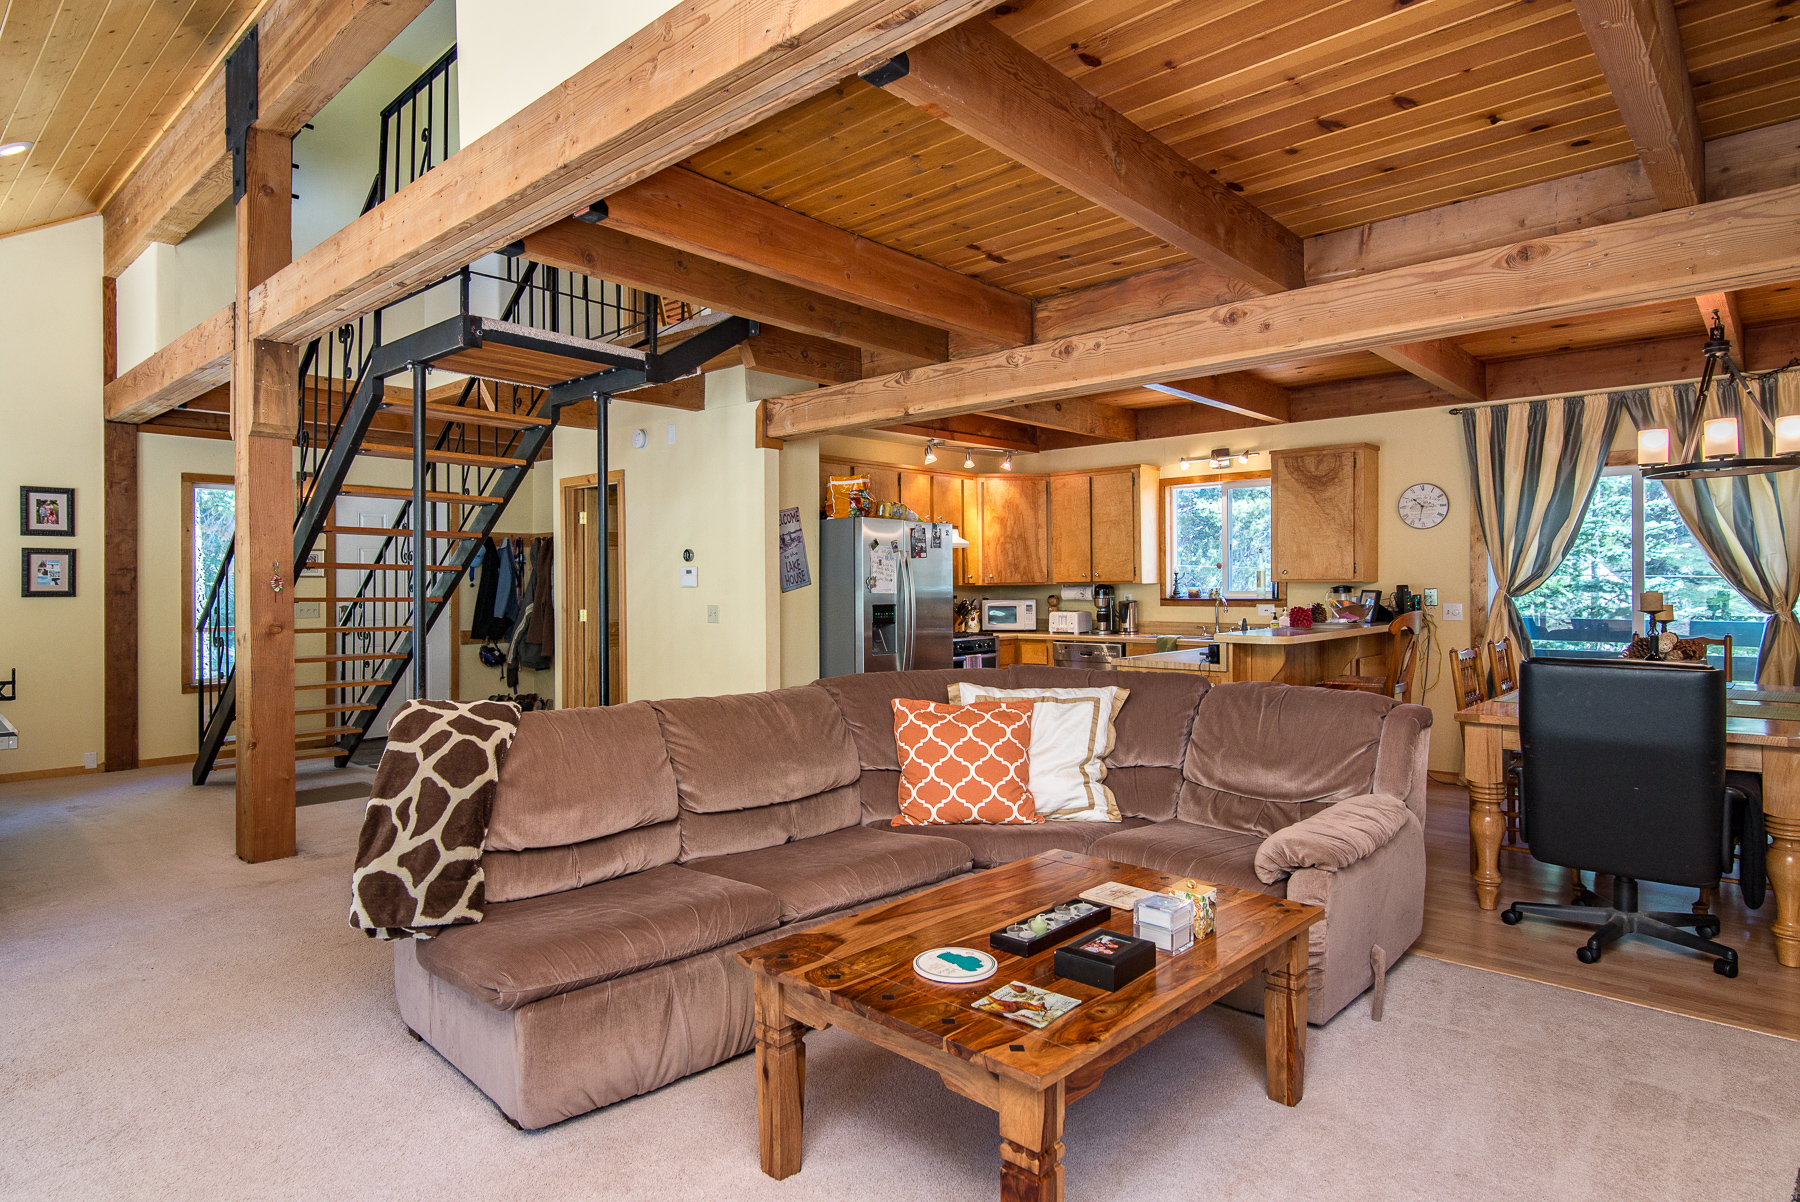 pin hotel win with value getaway cottages truckee at s backyard ca link more photos new a sunset cottage video magazine day